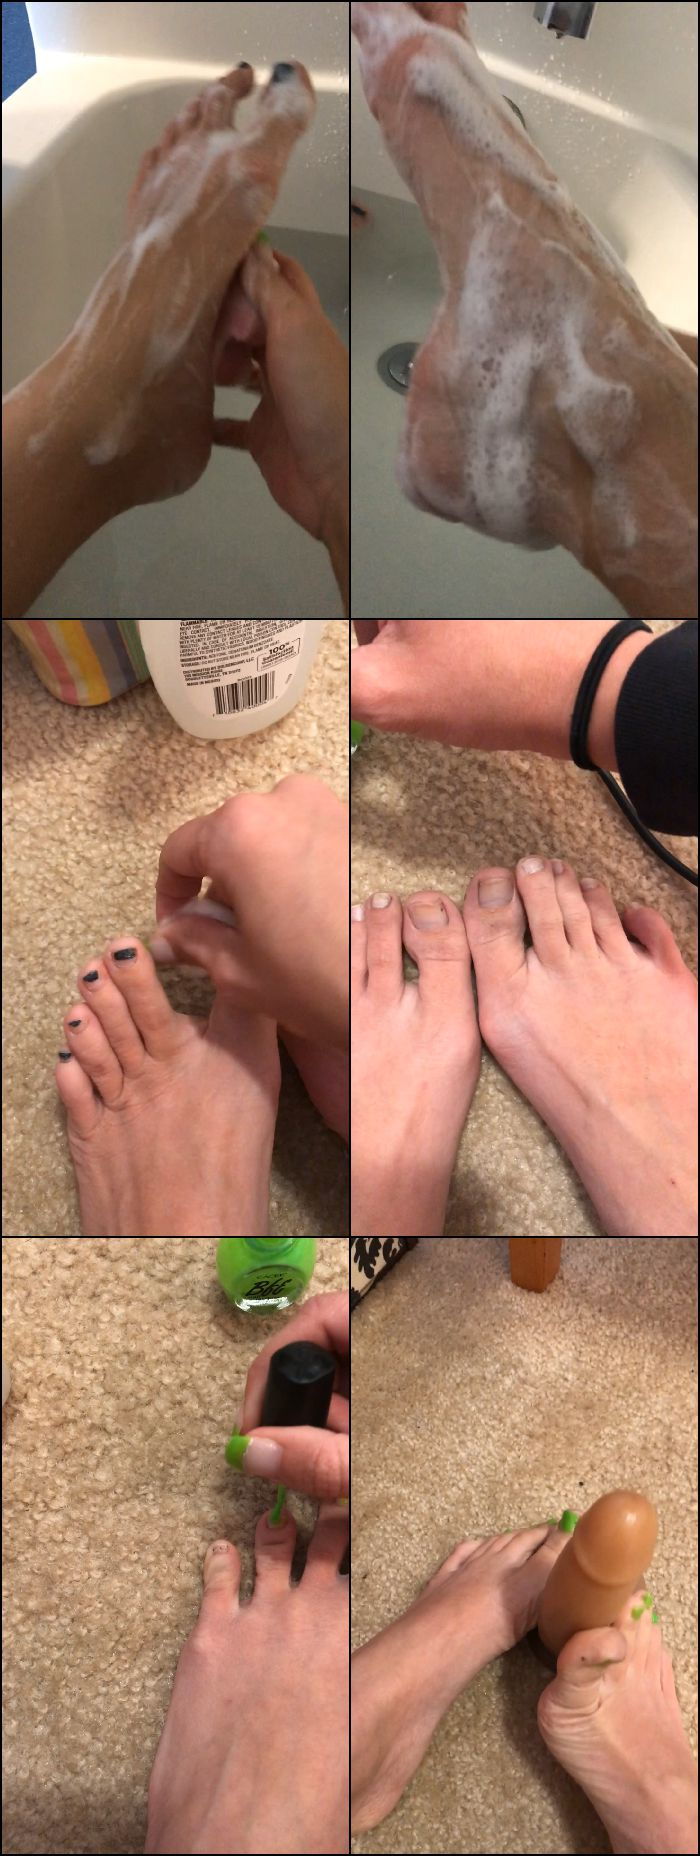 juliajay-getting-feet-ready-and-dildo-footjob-2018-06-11 Y85Szk Preview